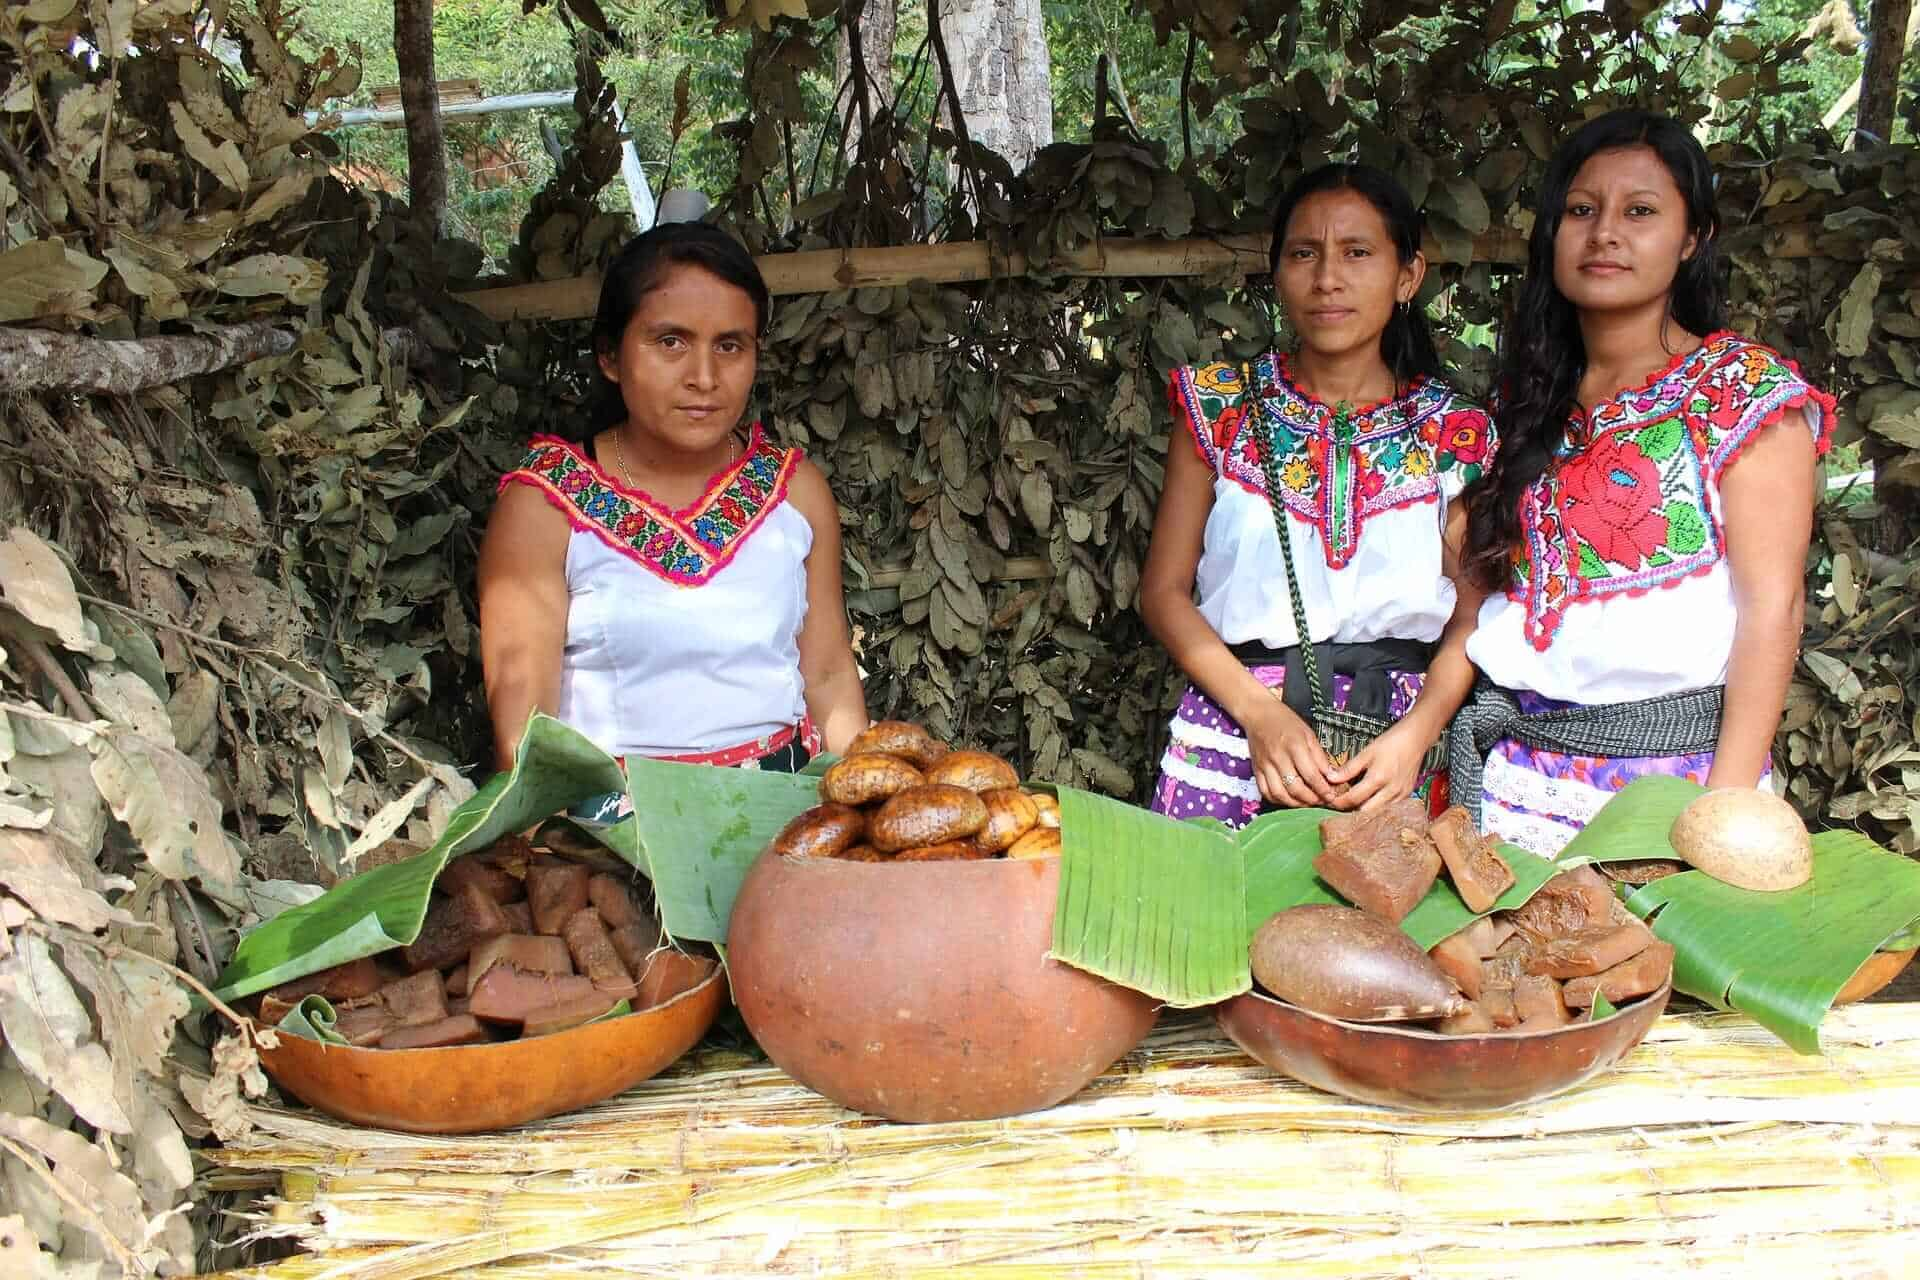 Women in traditional clothes in Oaxaca